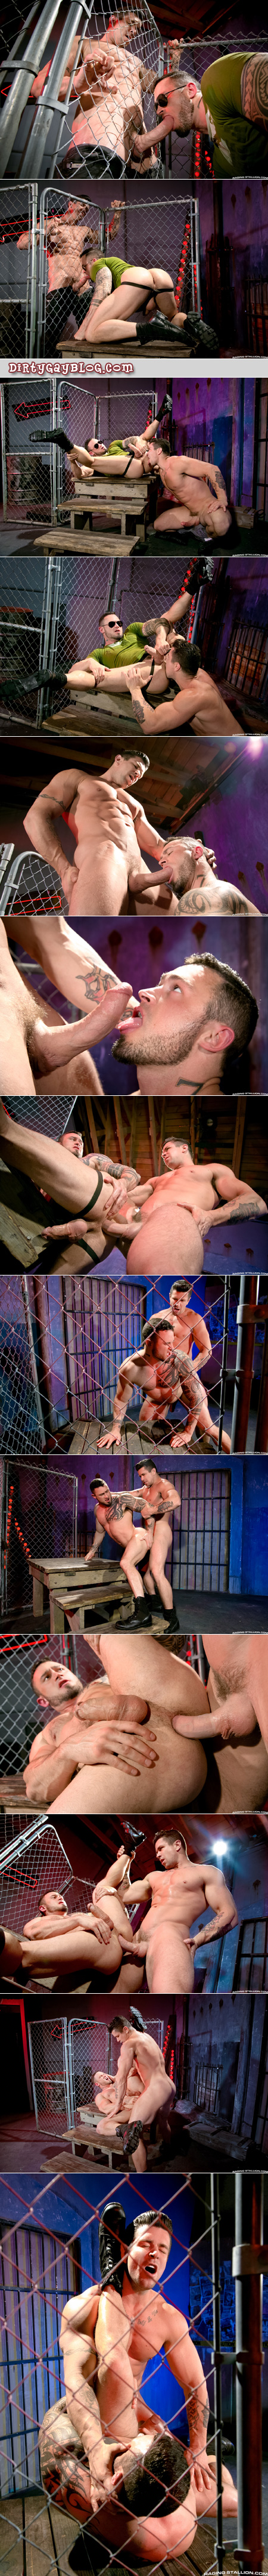 Inked muscle man fucking another tattooed bodybuilder with his enormous cock.